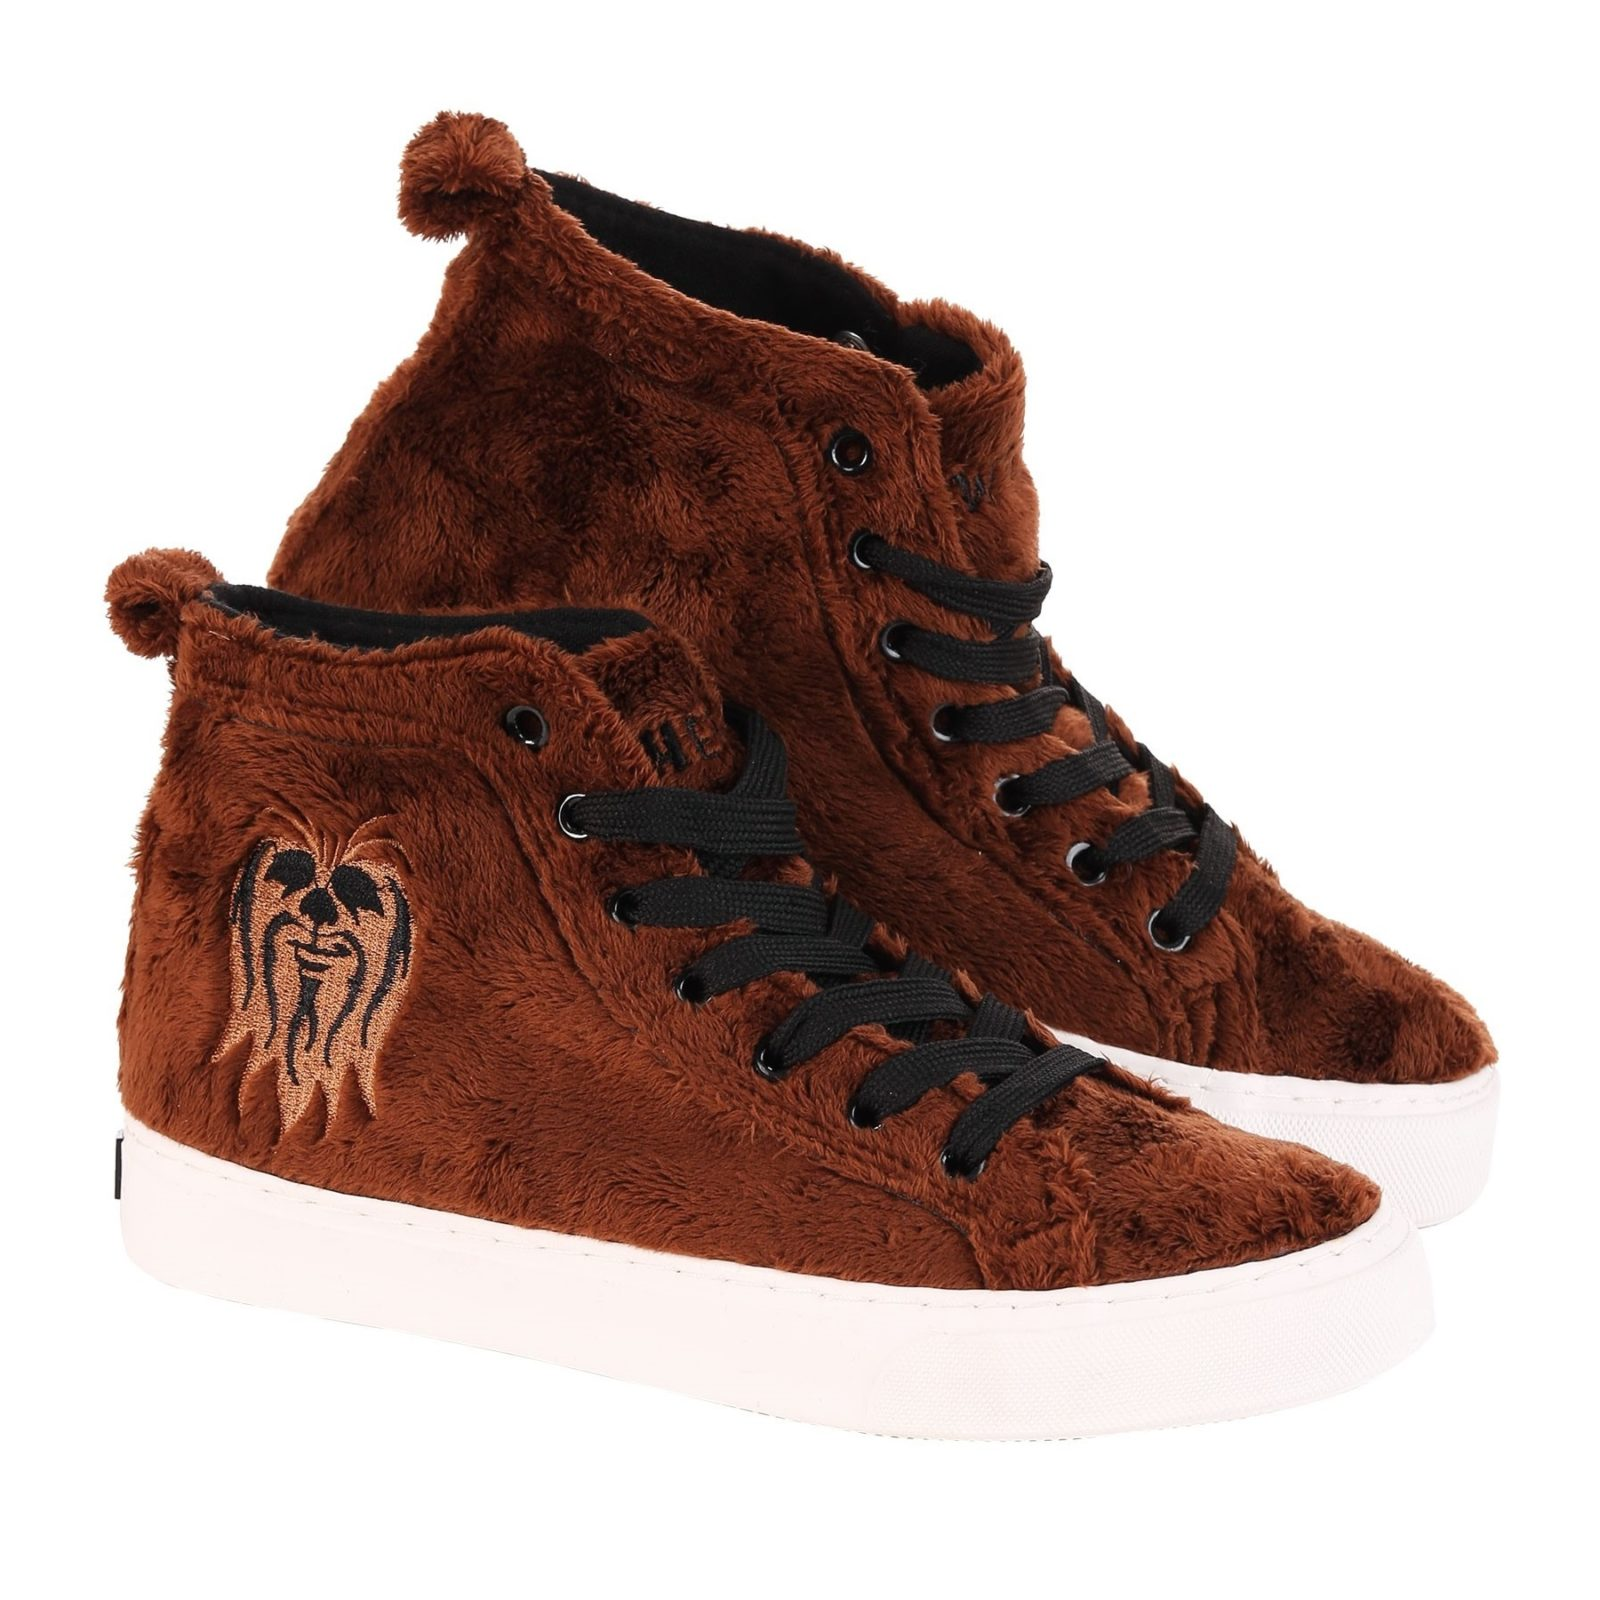 Star Wars Chewbacca Faux Fur High Top Sneakers at Fun